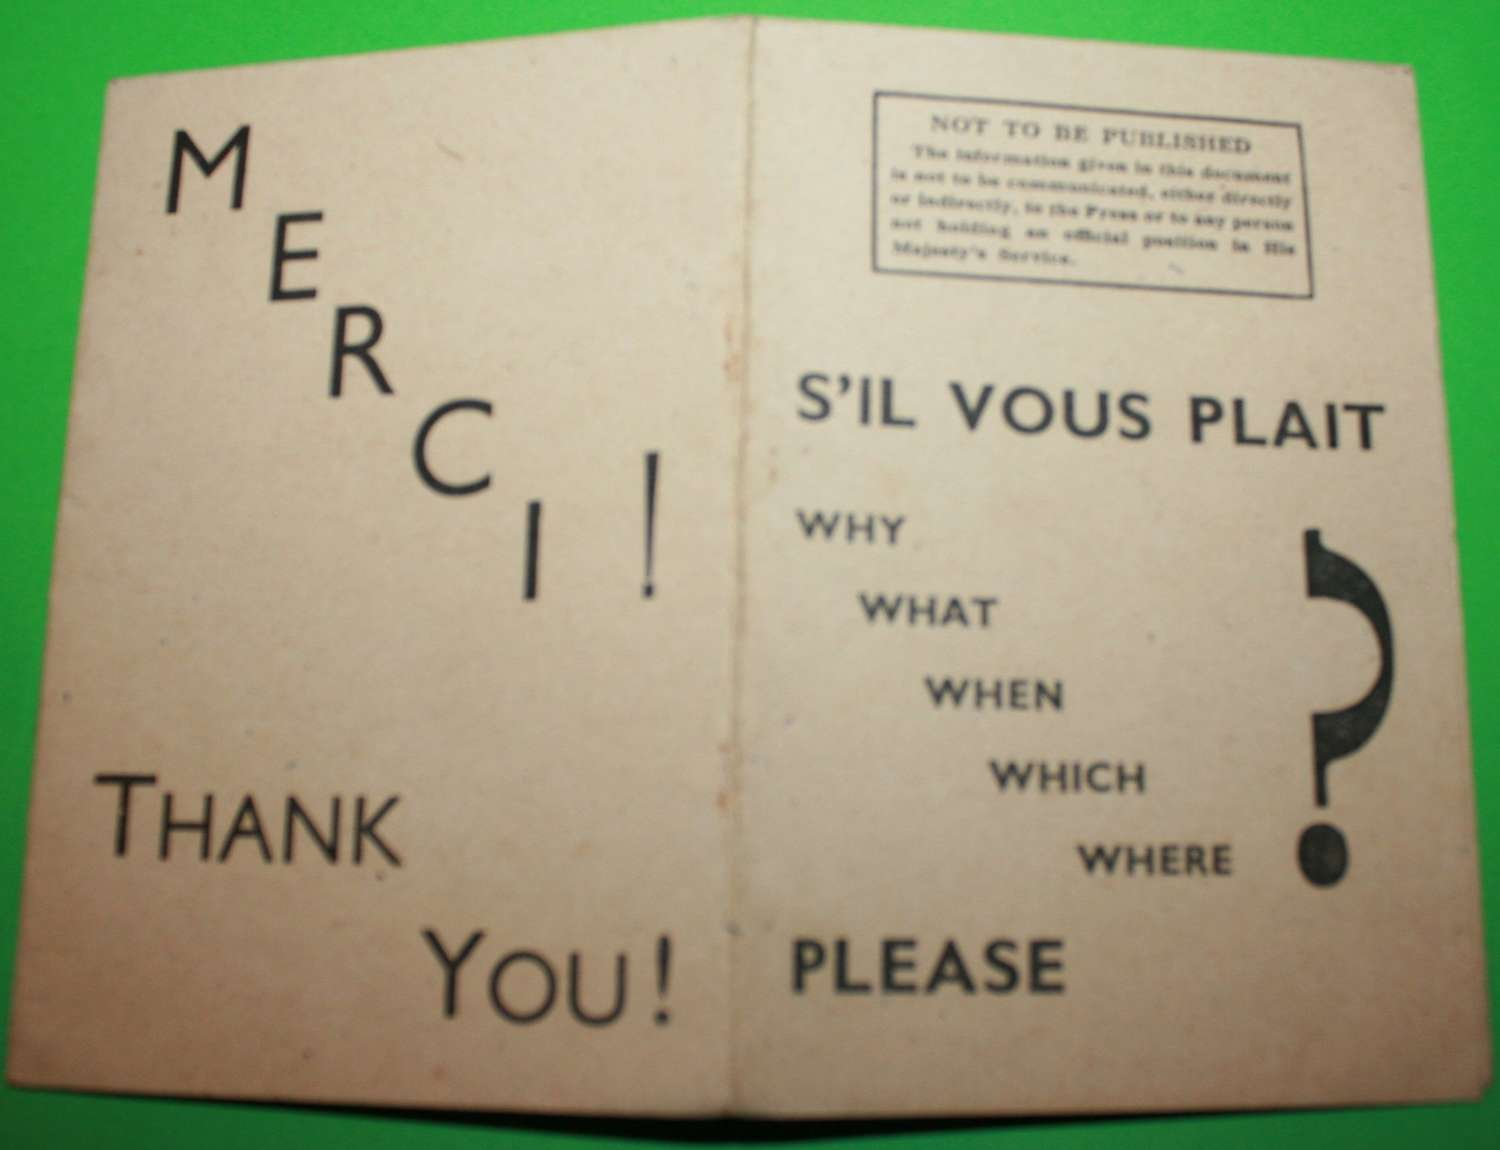 A RARE WWII COMBINED OPERATIONS S'IL VOUS PLAIT 5 W'S LEAFLET